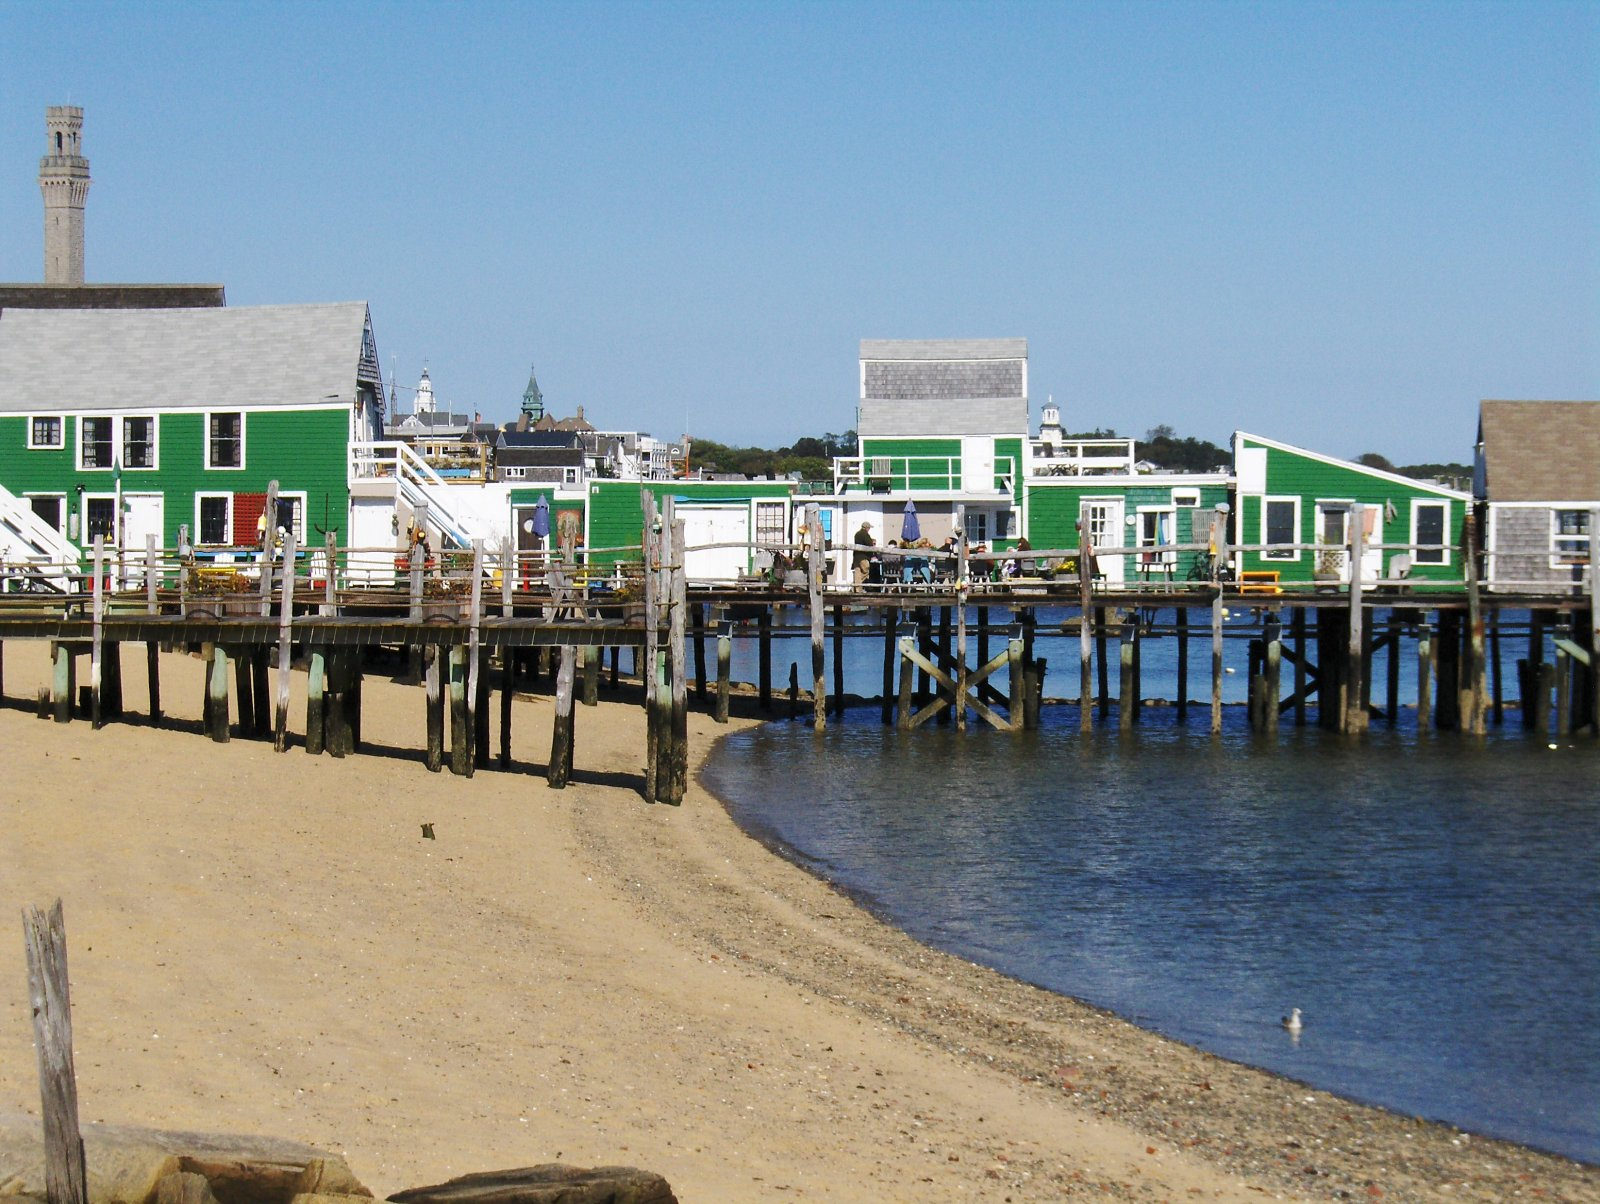 Click image for larger version  Name:PTown 086.jpg Views:99 Size:363.5 KB ID:88927